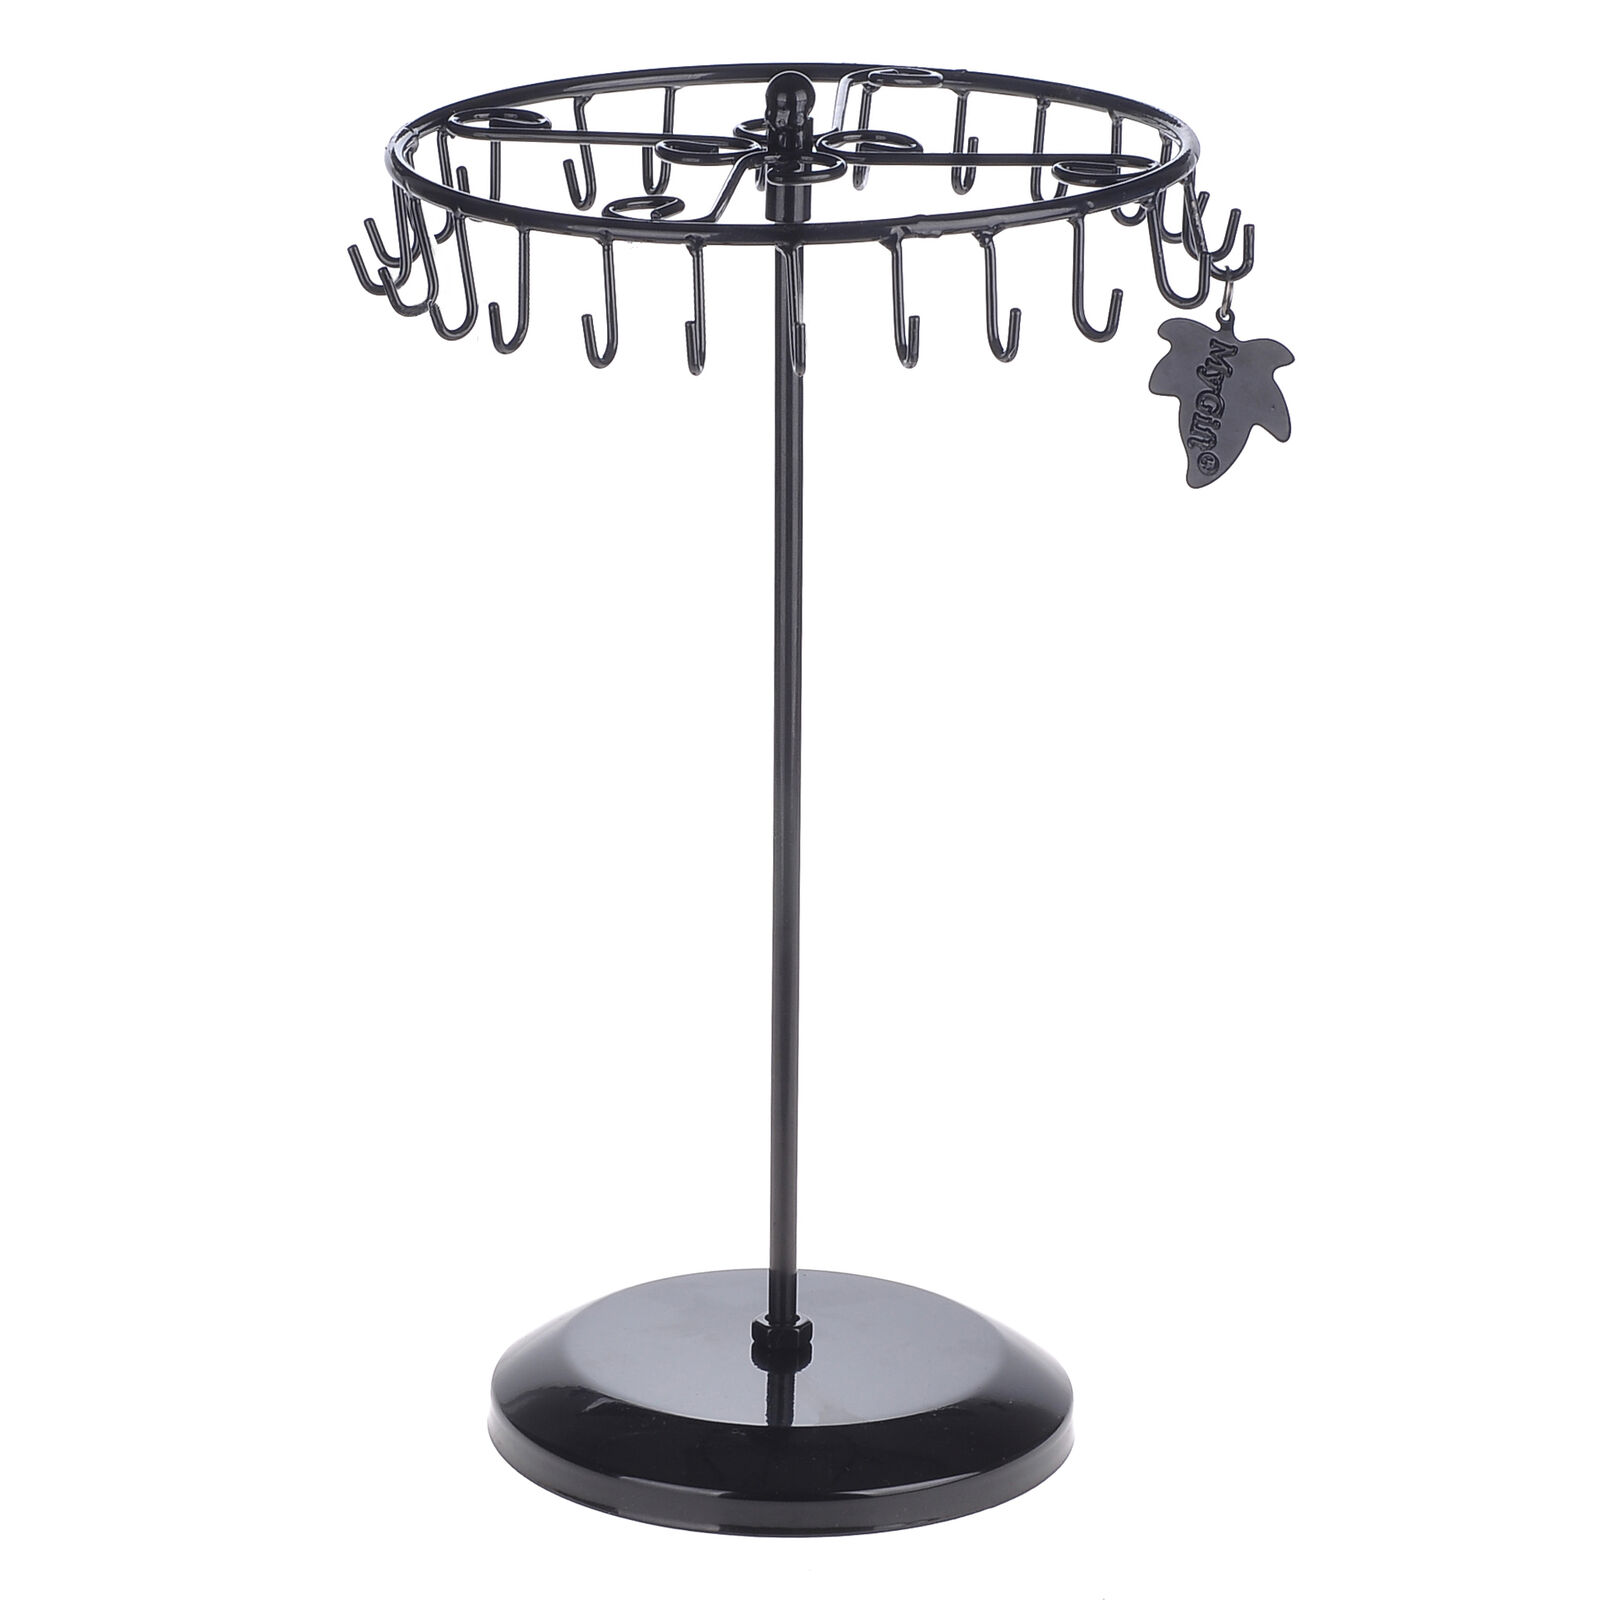 Vintage Earrings Tree Display Stand with 8 Tier Revolving Branches for Studs Necklaces Rings Bracelets Black OROPY Rotating Jewelry Tower Organizer